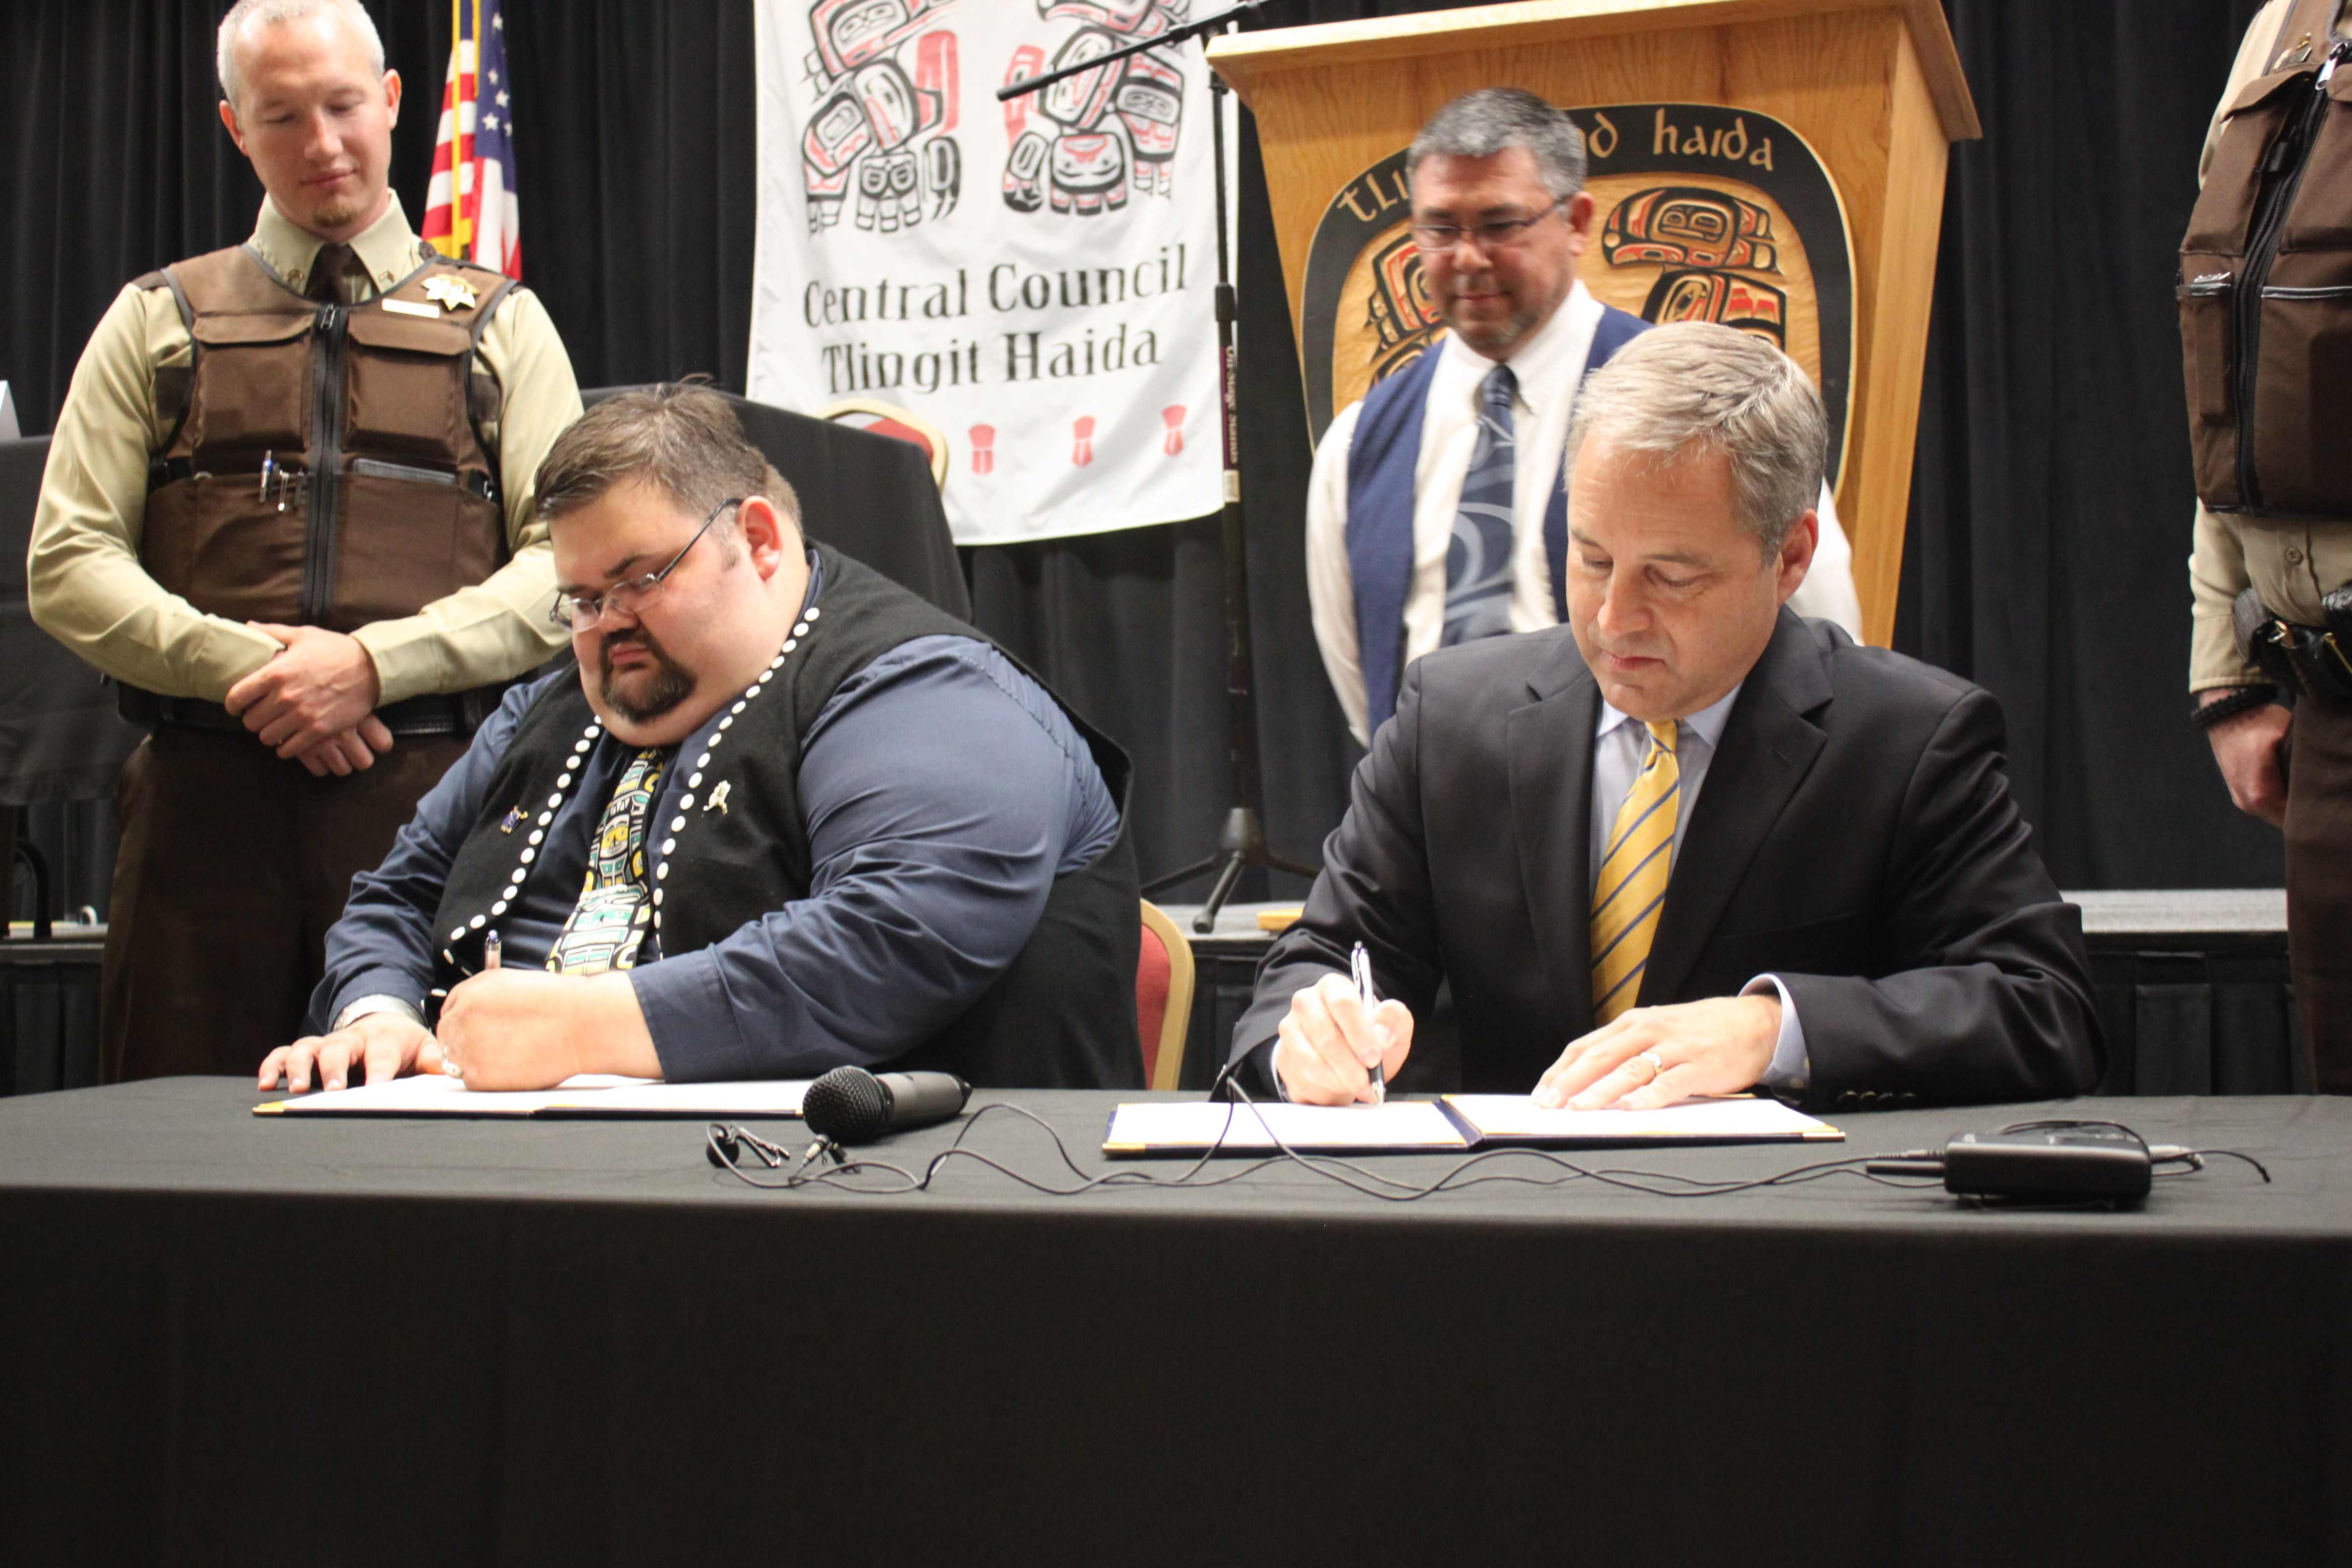 Central Council President Richard Peterson and Gov. Sean Parnell sign a Memorandum of Agreement on Monday at the Elizabeth Peratrovich Hall. (Photo by Lisa Phu/KTOO)